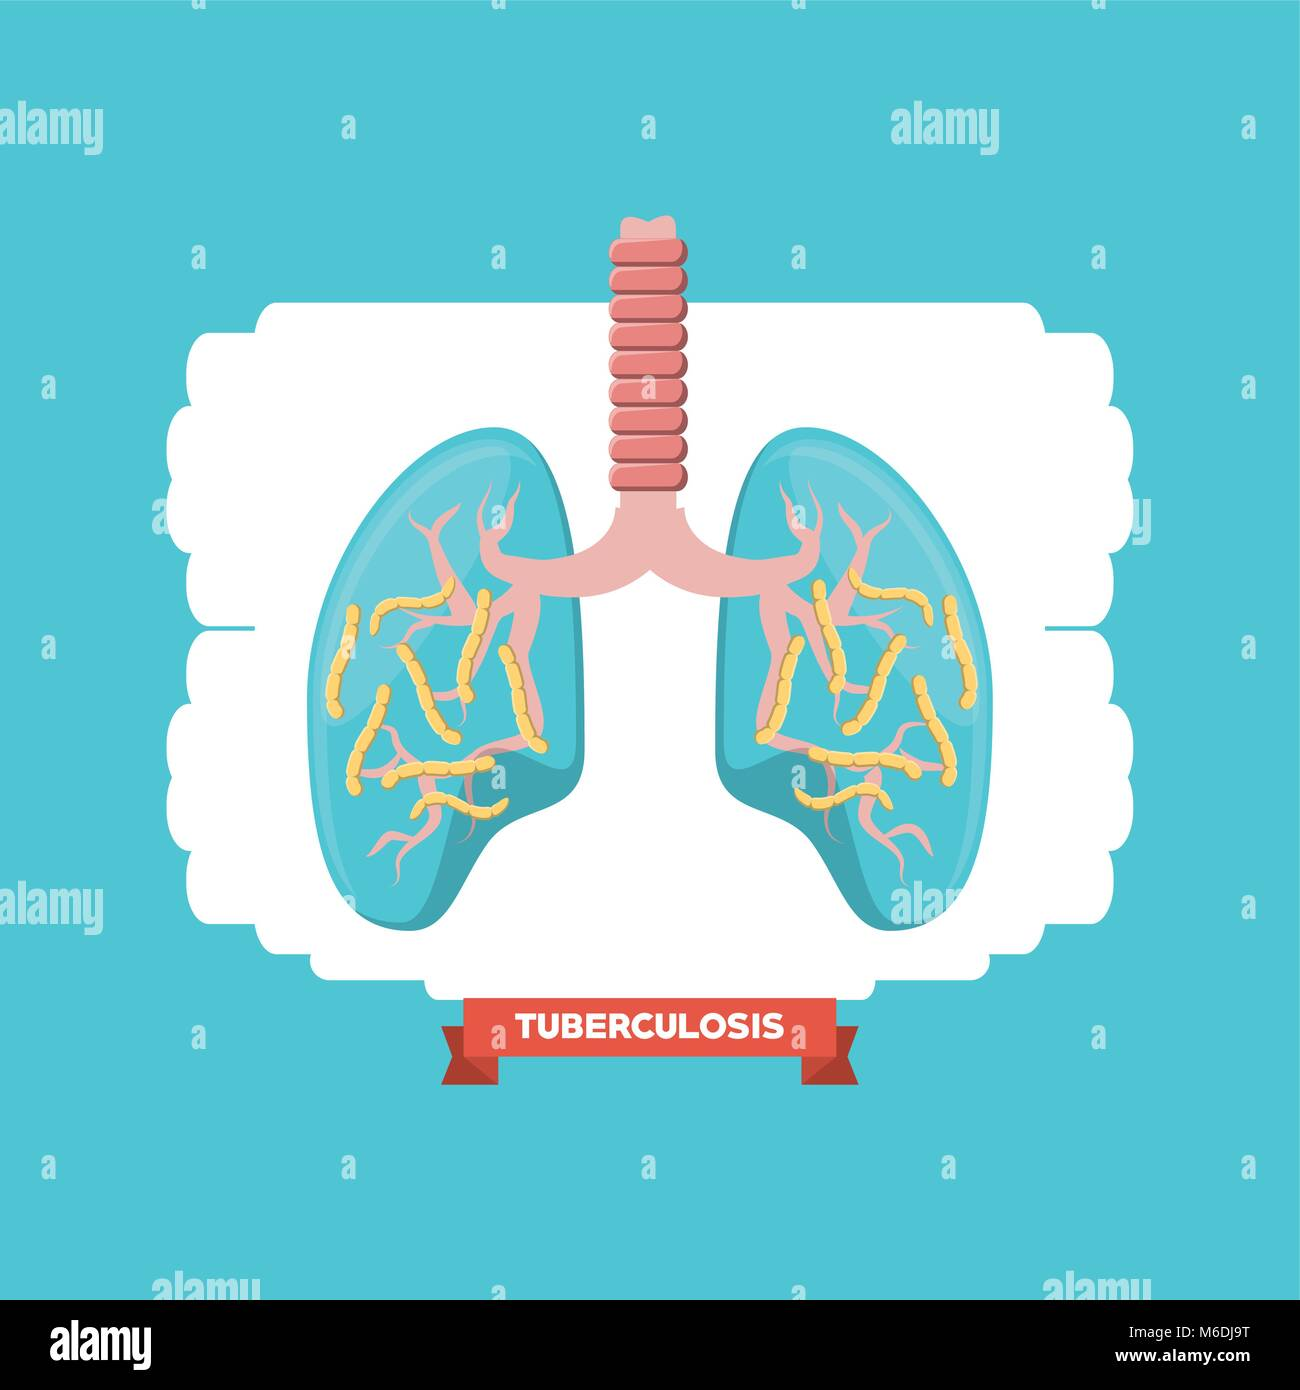 Lungs with tuberculosis bacterias over white and blue background, colorful design vector illustration - Stock Vector